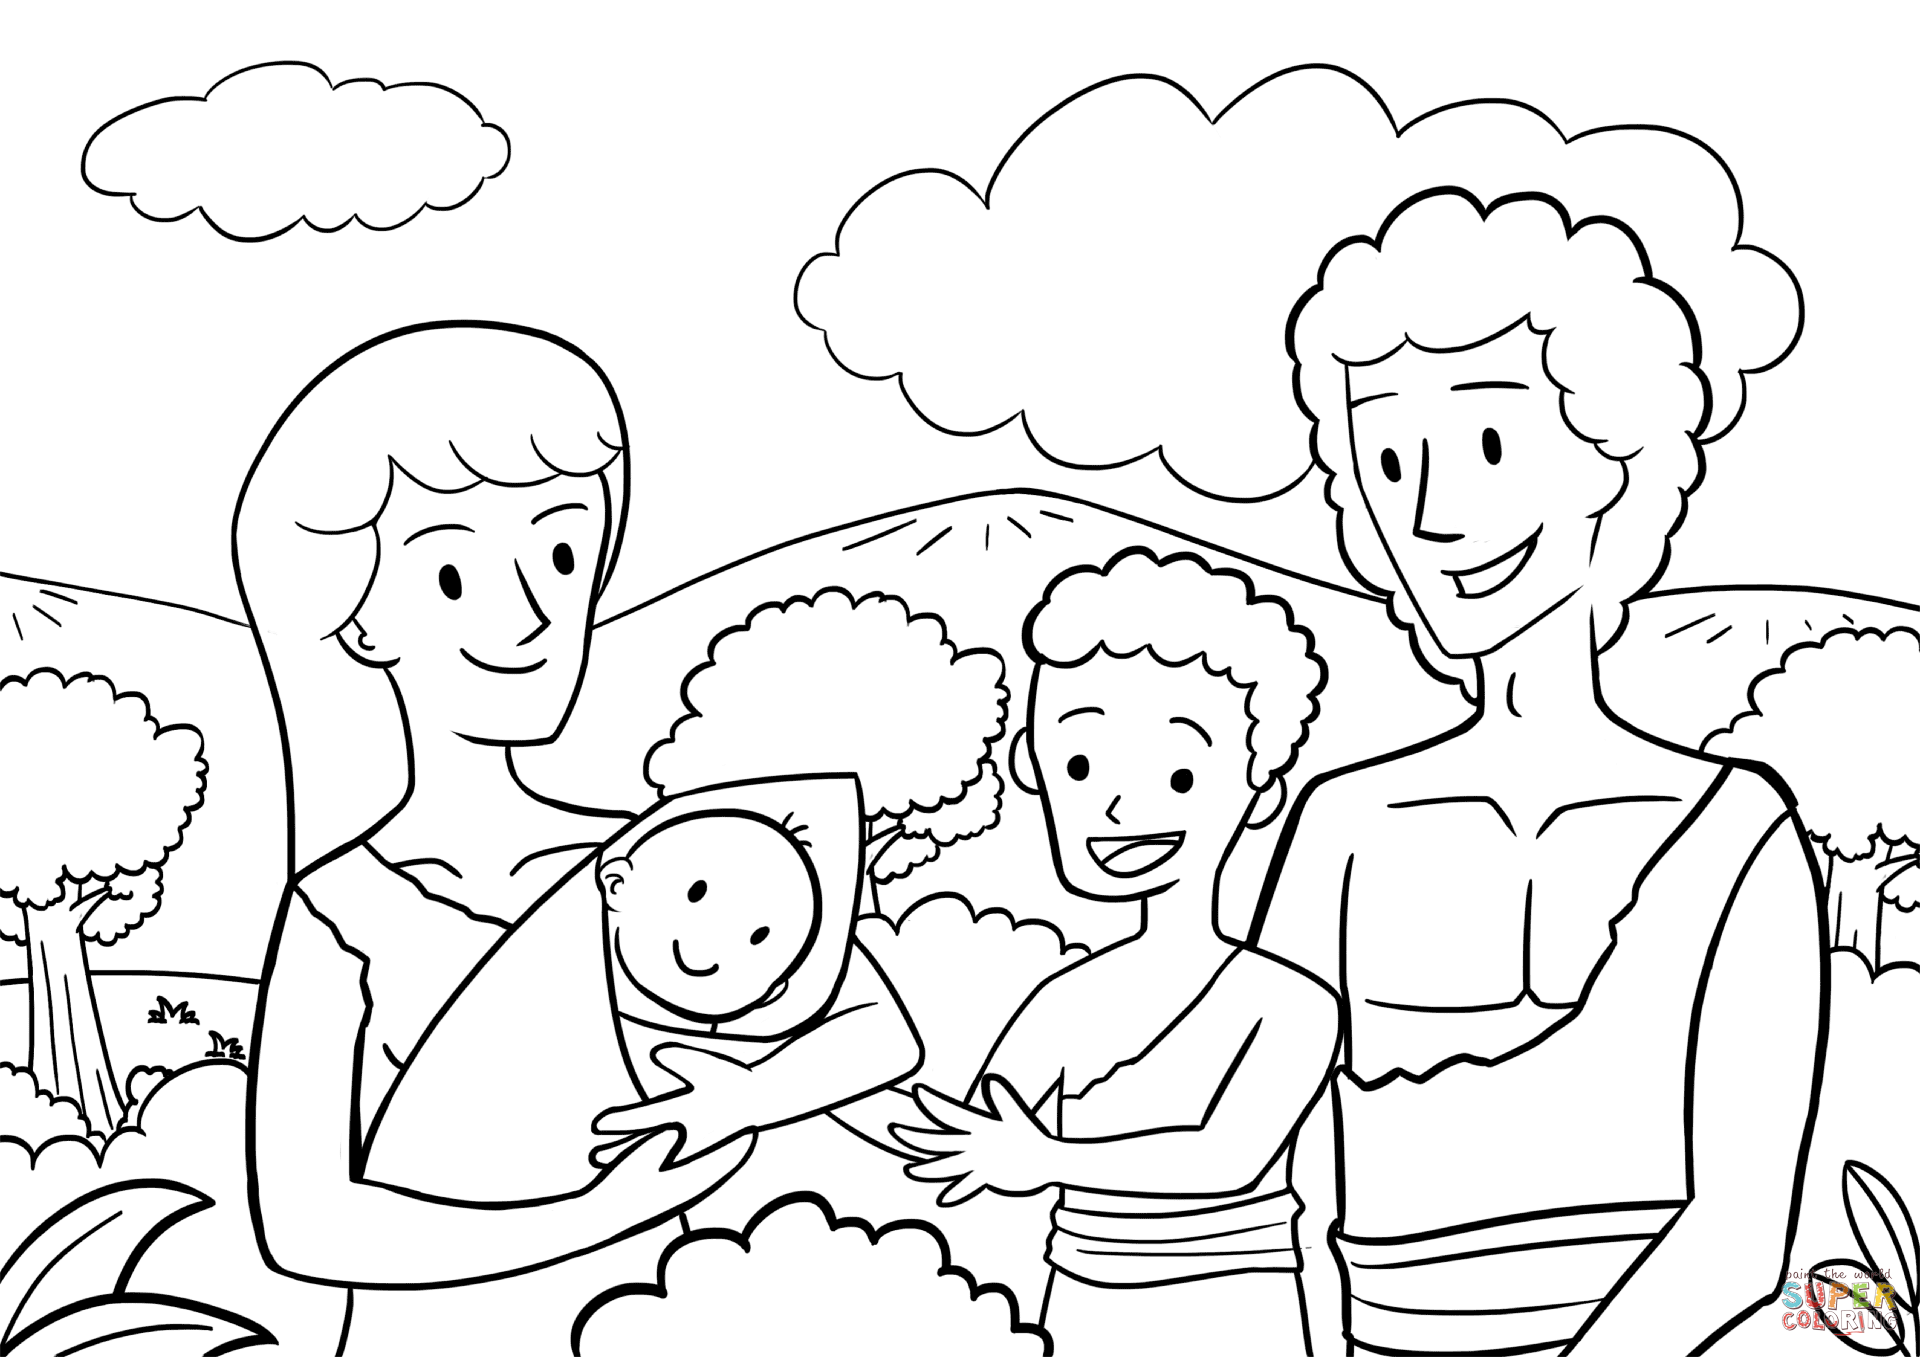 coloring adam and eve story for kids free printable adam and eve coloring pages for kids best adam eve and kids story coloring for